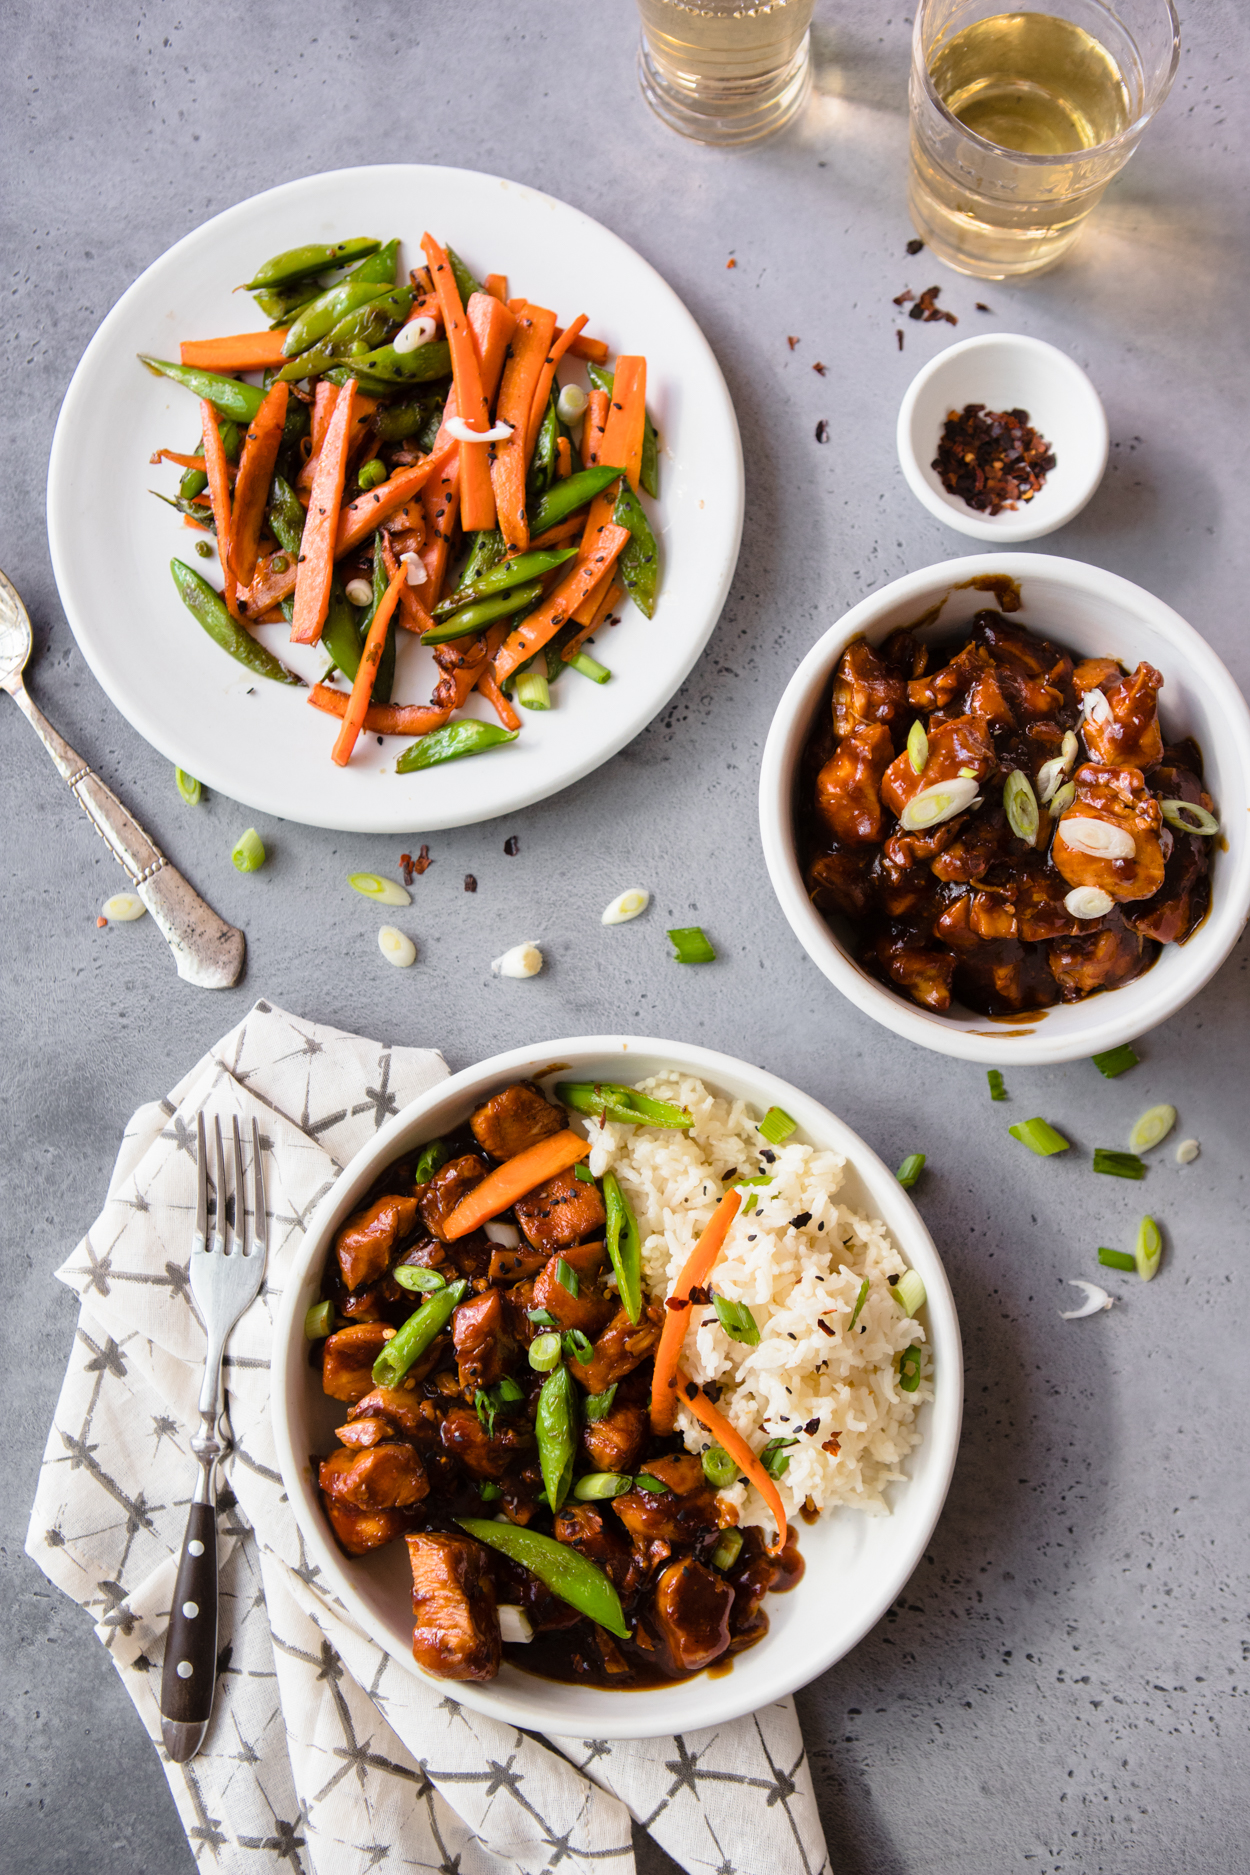 Instant Pot General Tso's Chicken in a white bowl with a side of carrots and snow peas, and a bowl of General Tso's Chicken and rice